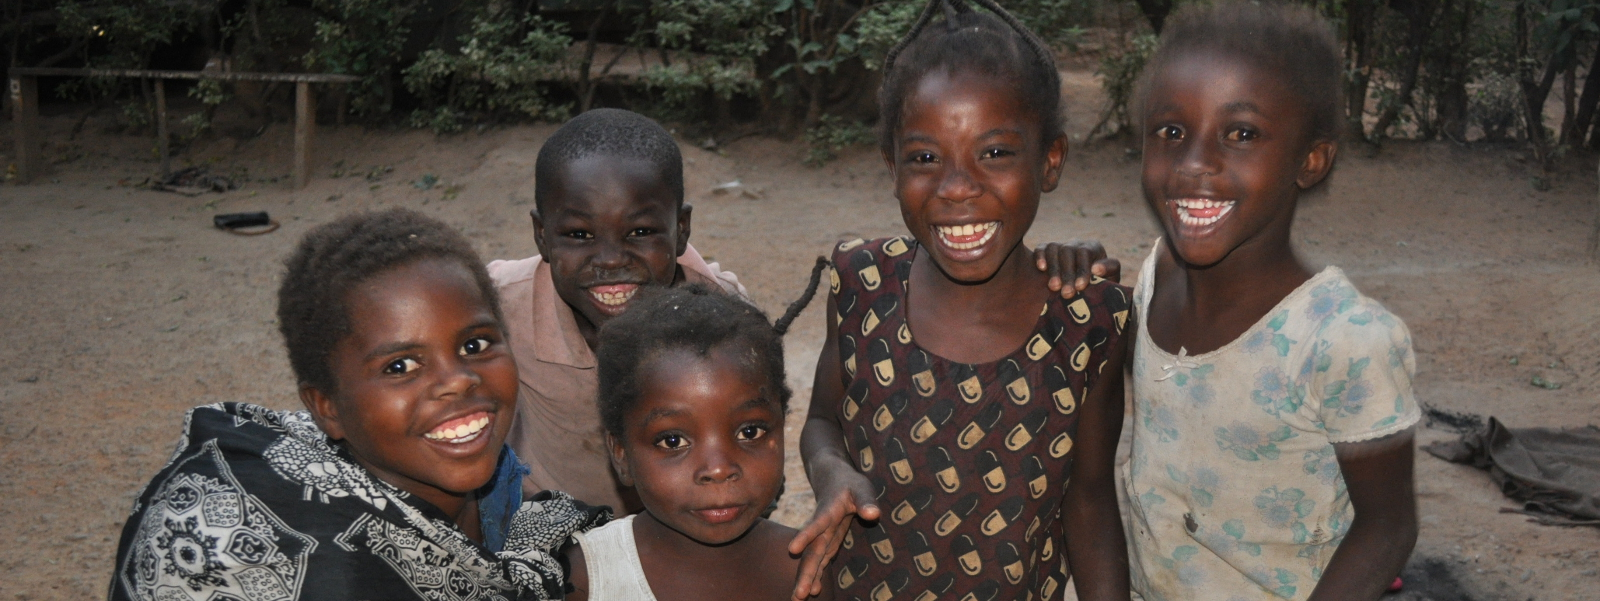 kawama Children in local community 1600x600